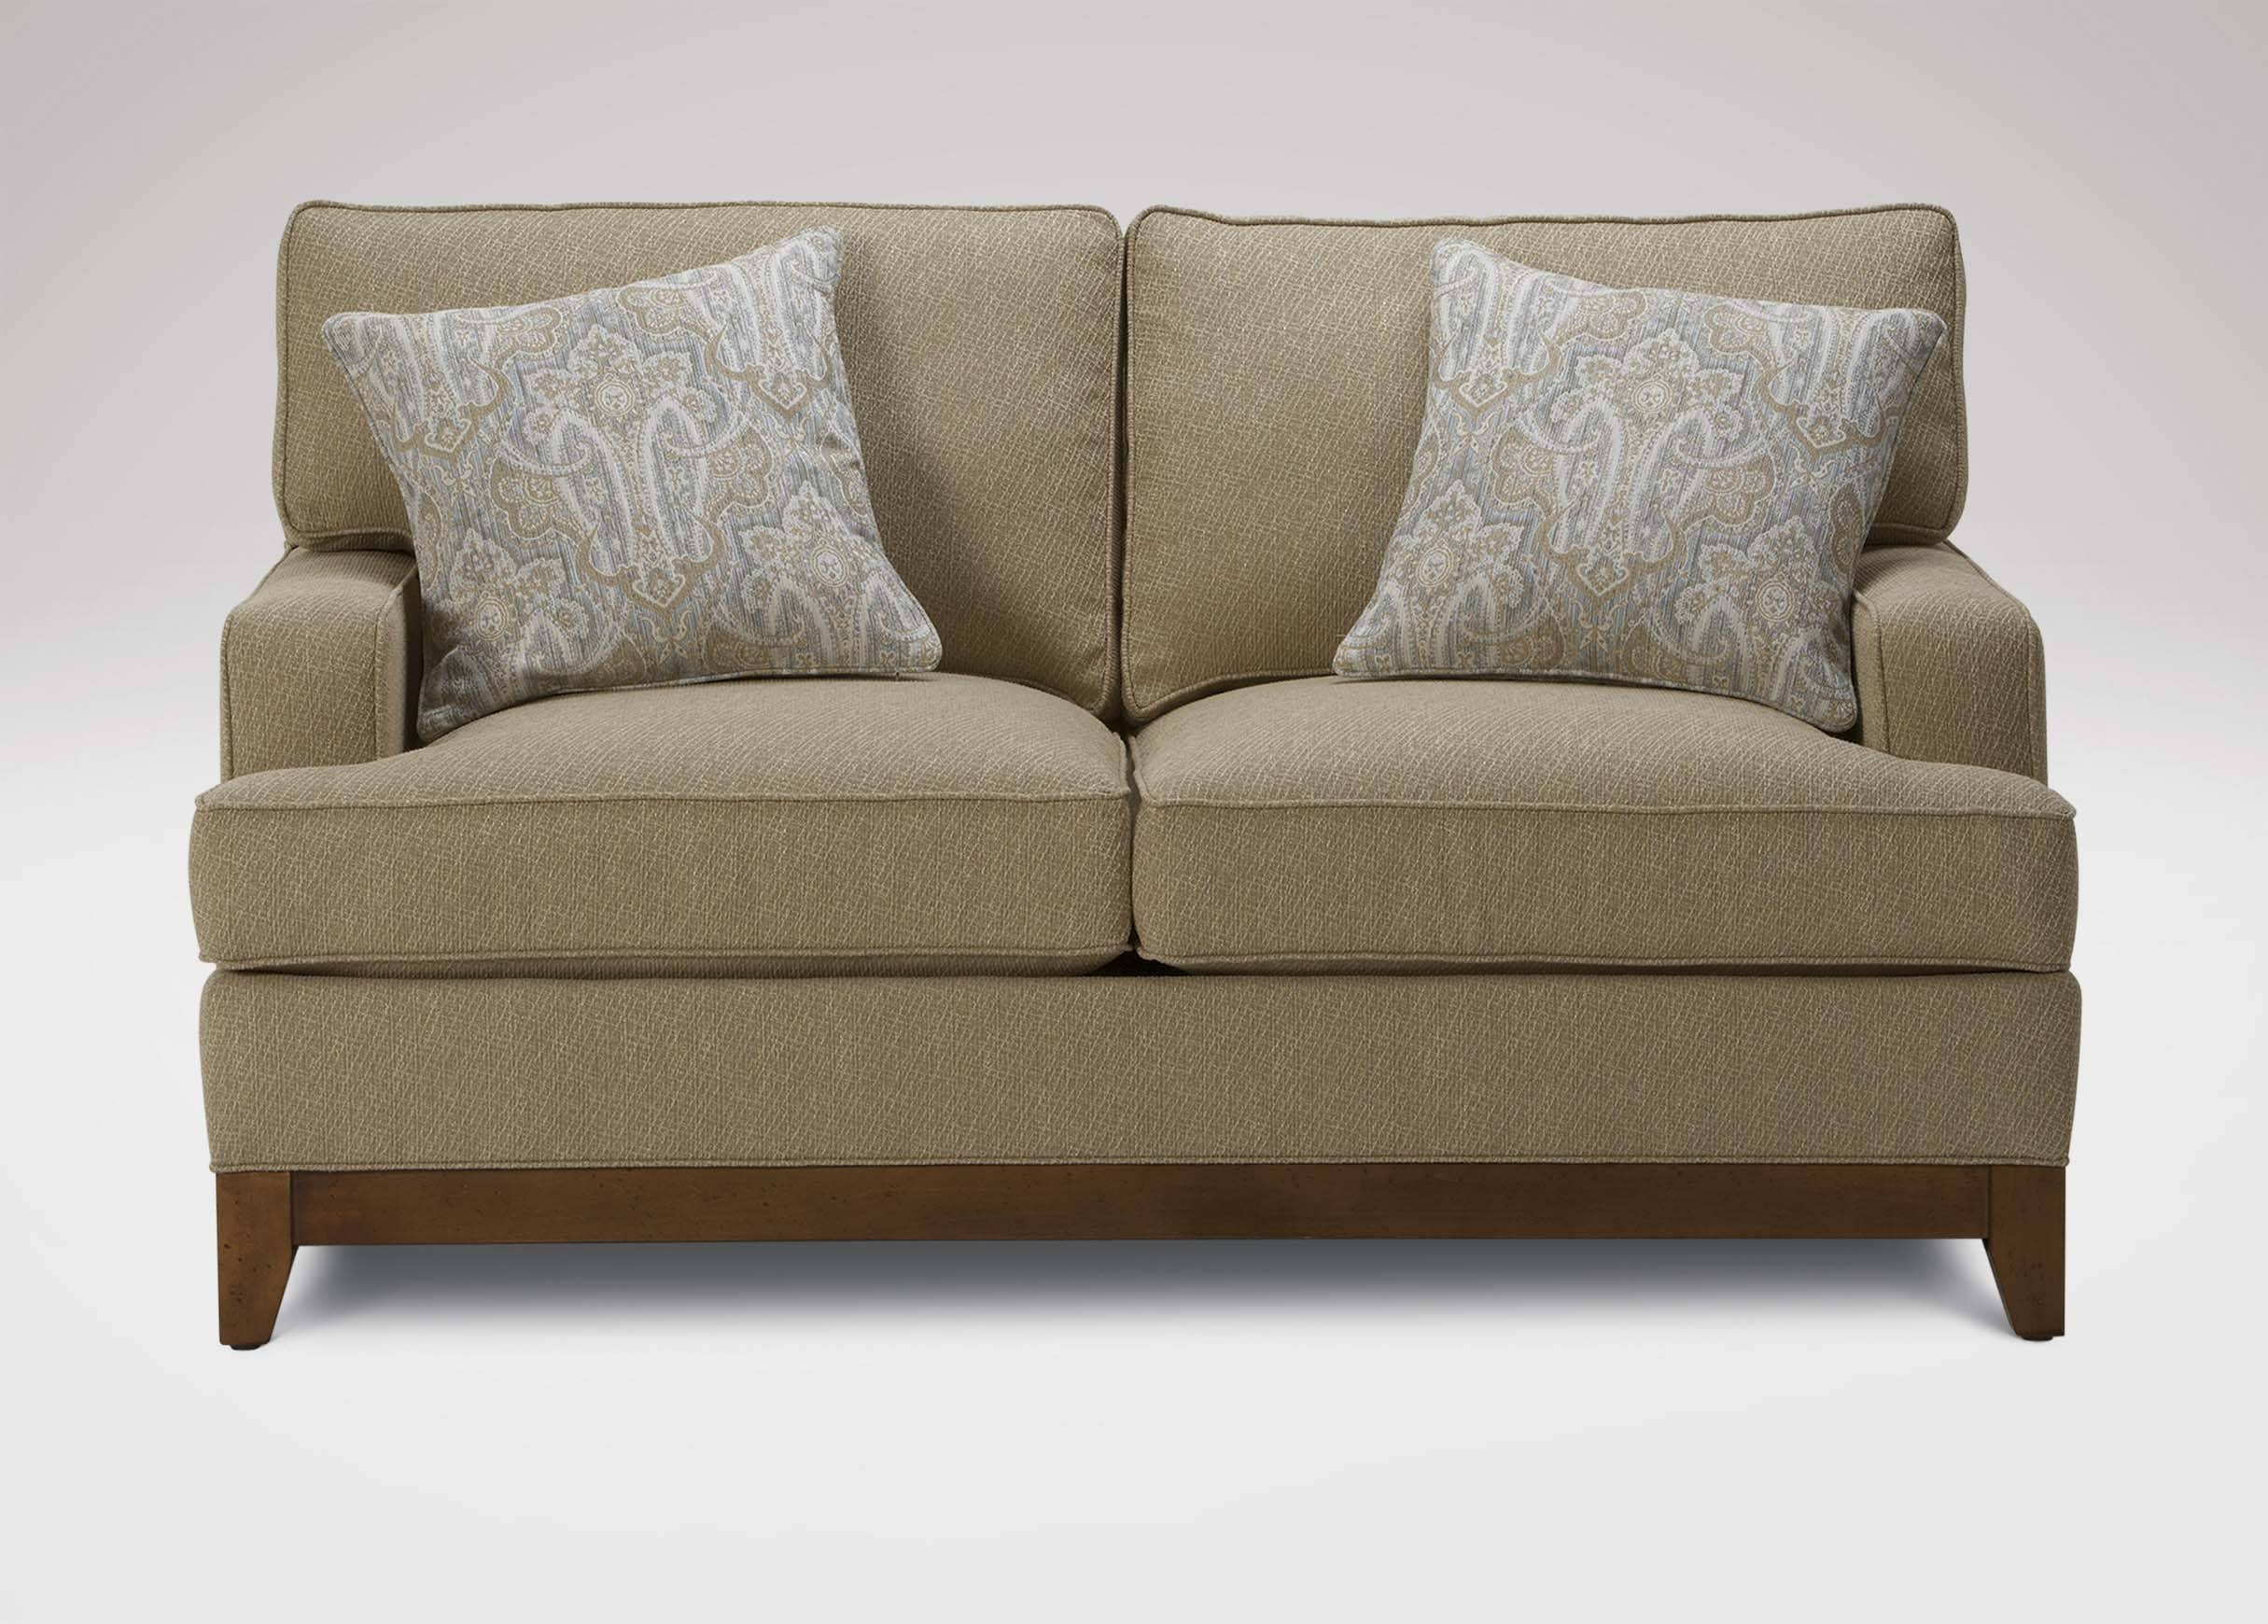 Arcata Sofa | Sofas & Loveseats pertaining to Ethan Allen Sofas And Chairs (Image 2 of 15)